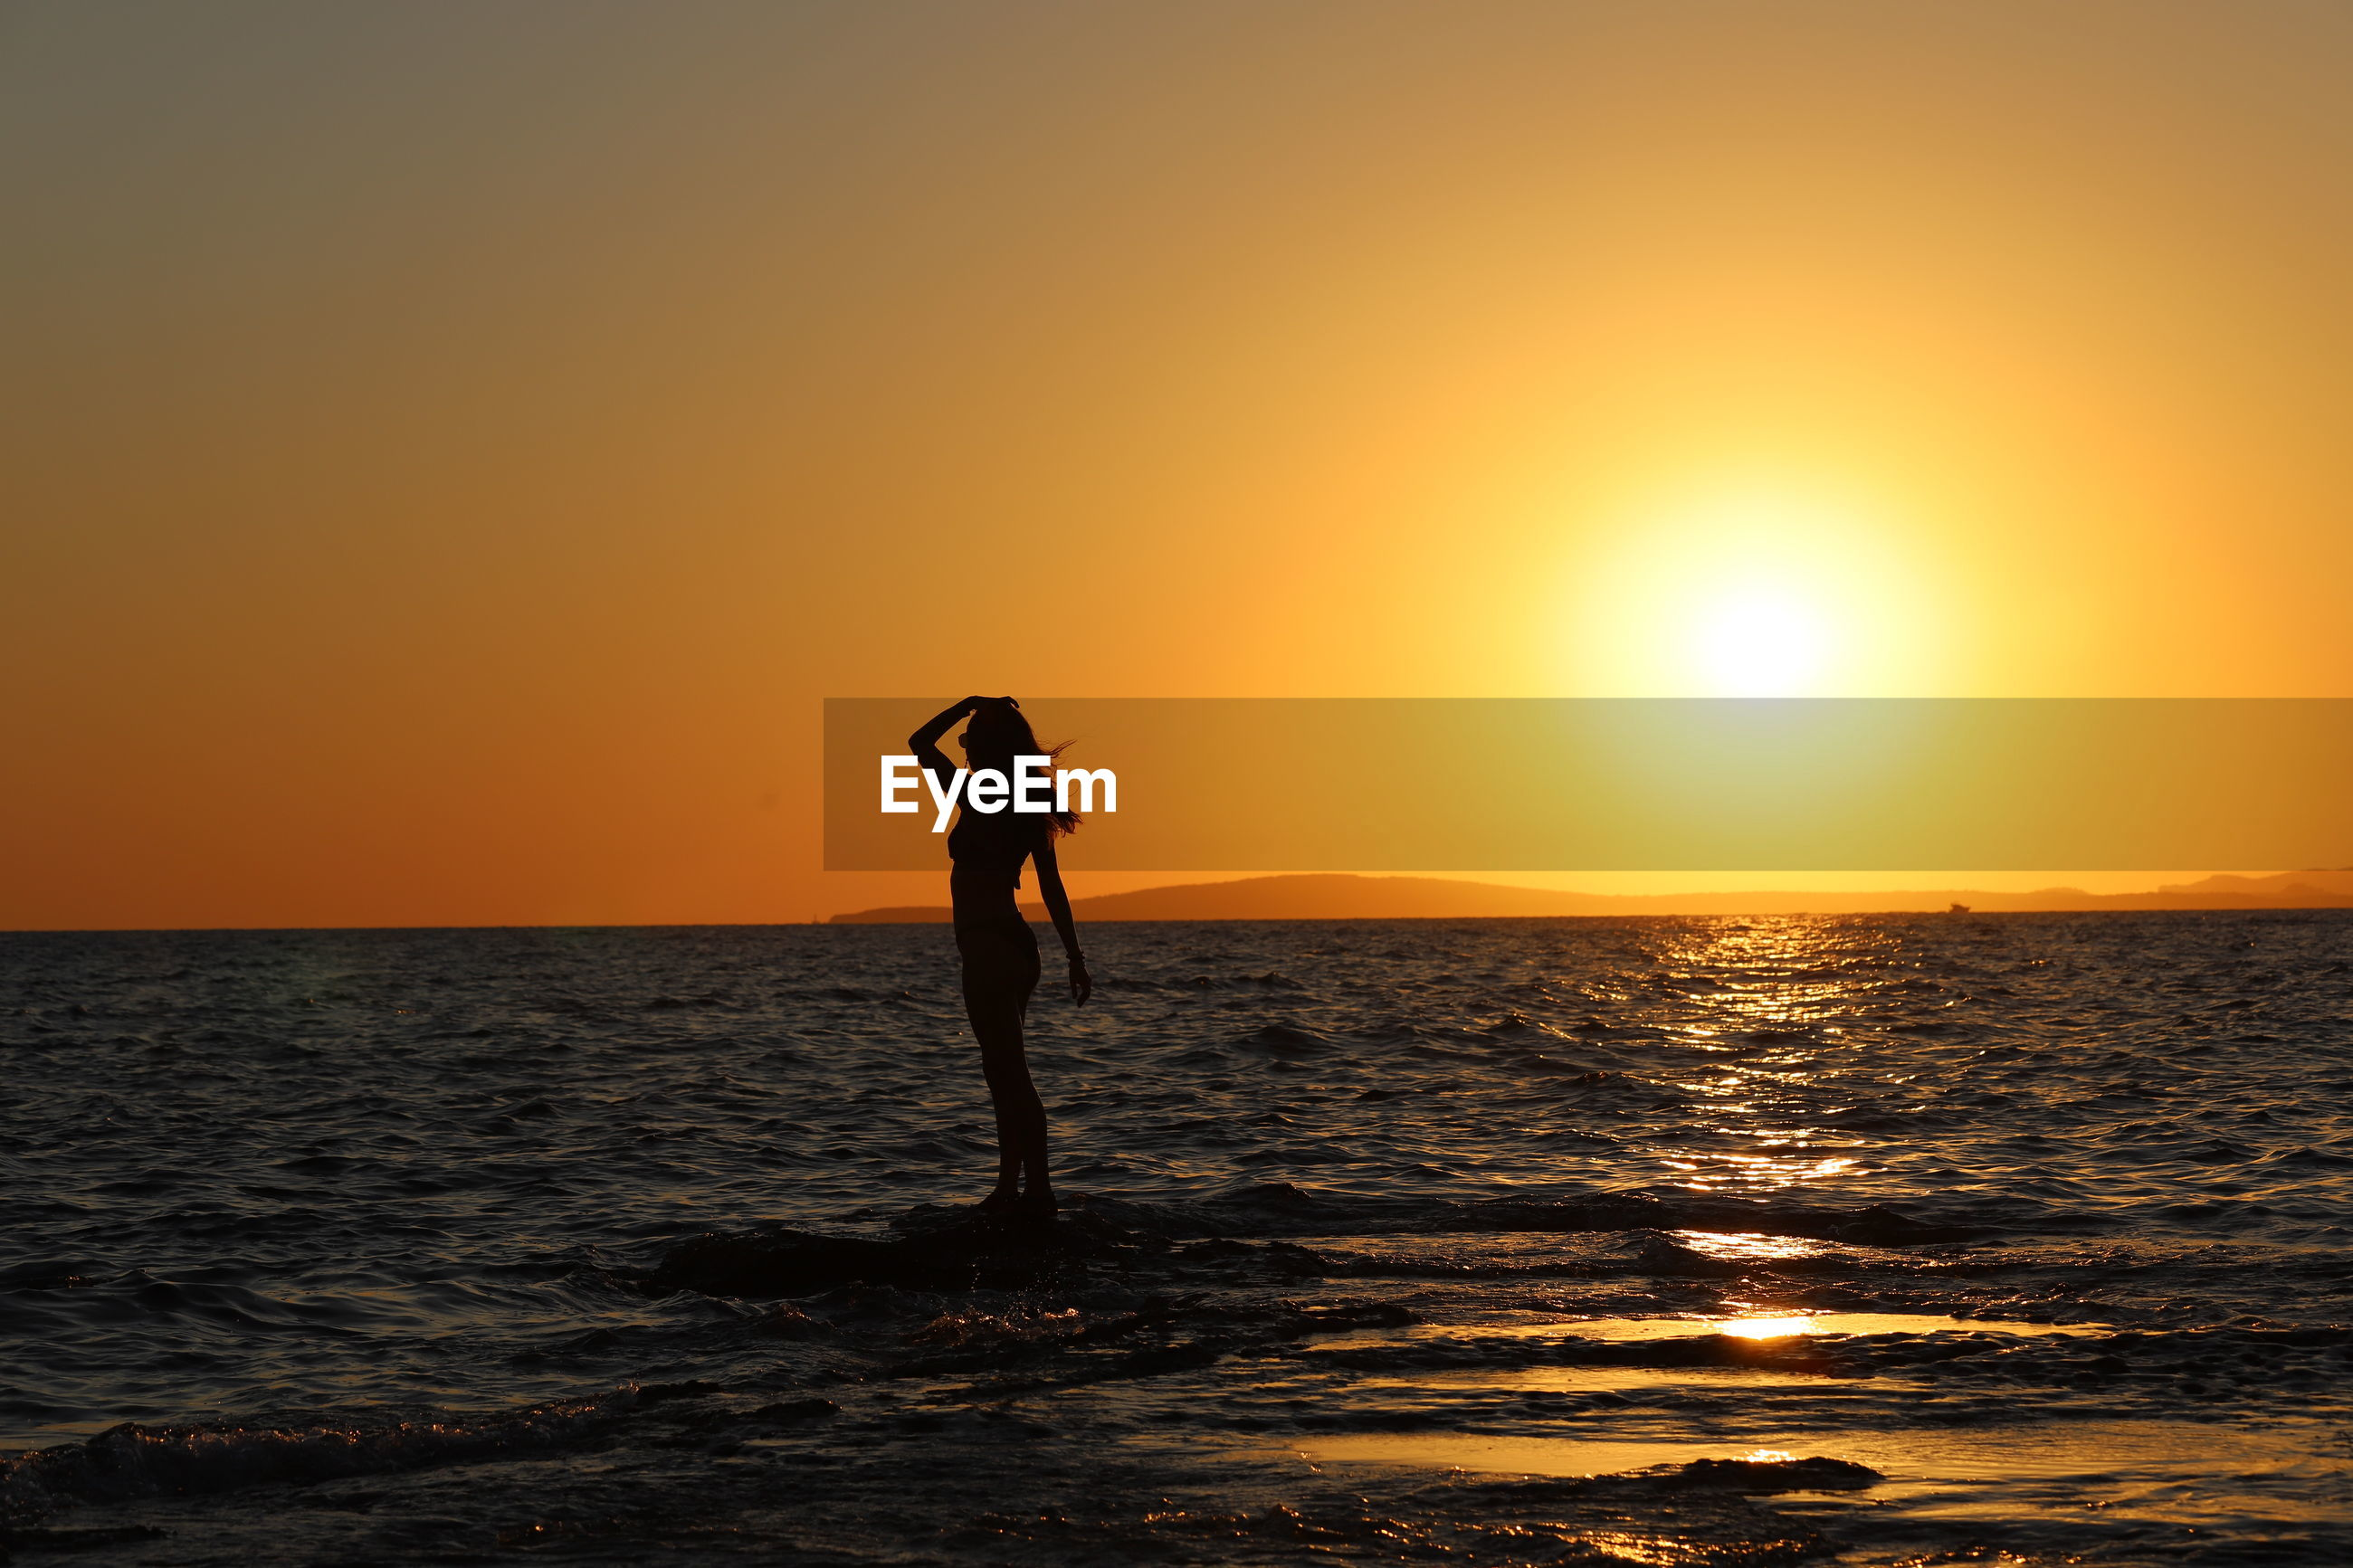 SILHOUETTE WOMAN STANDING ON SHORE AGAINST ORANGE SKY